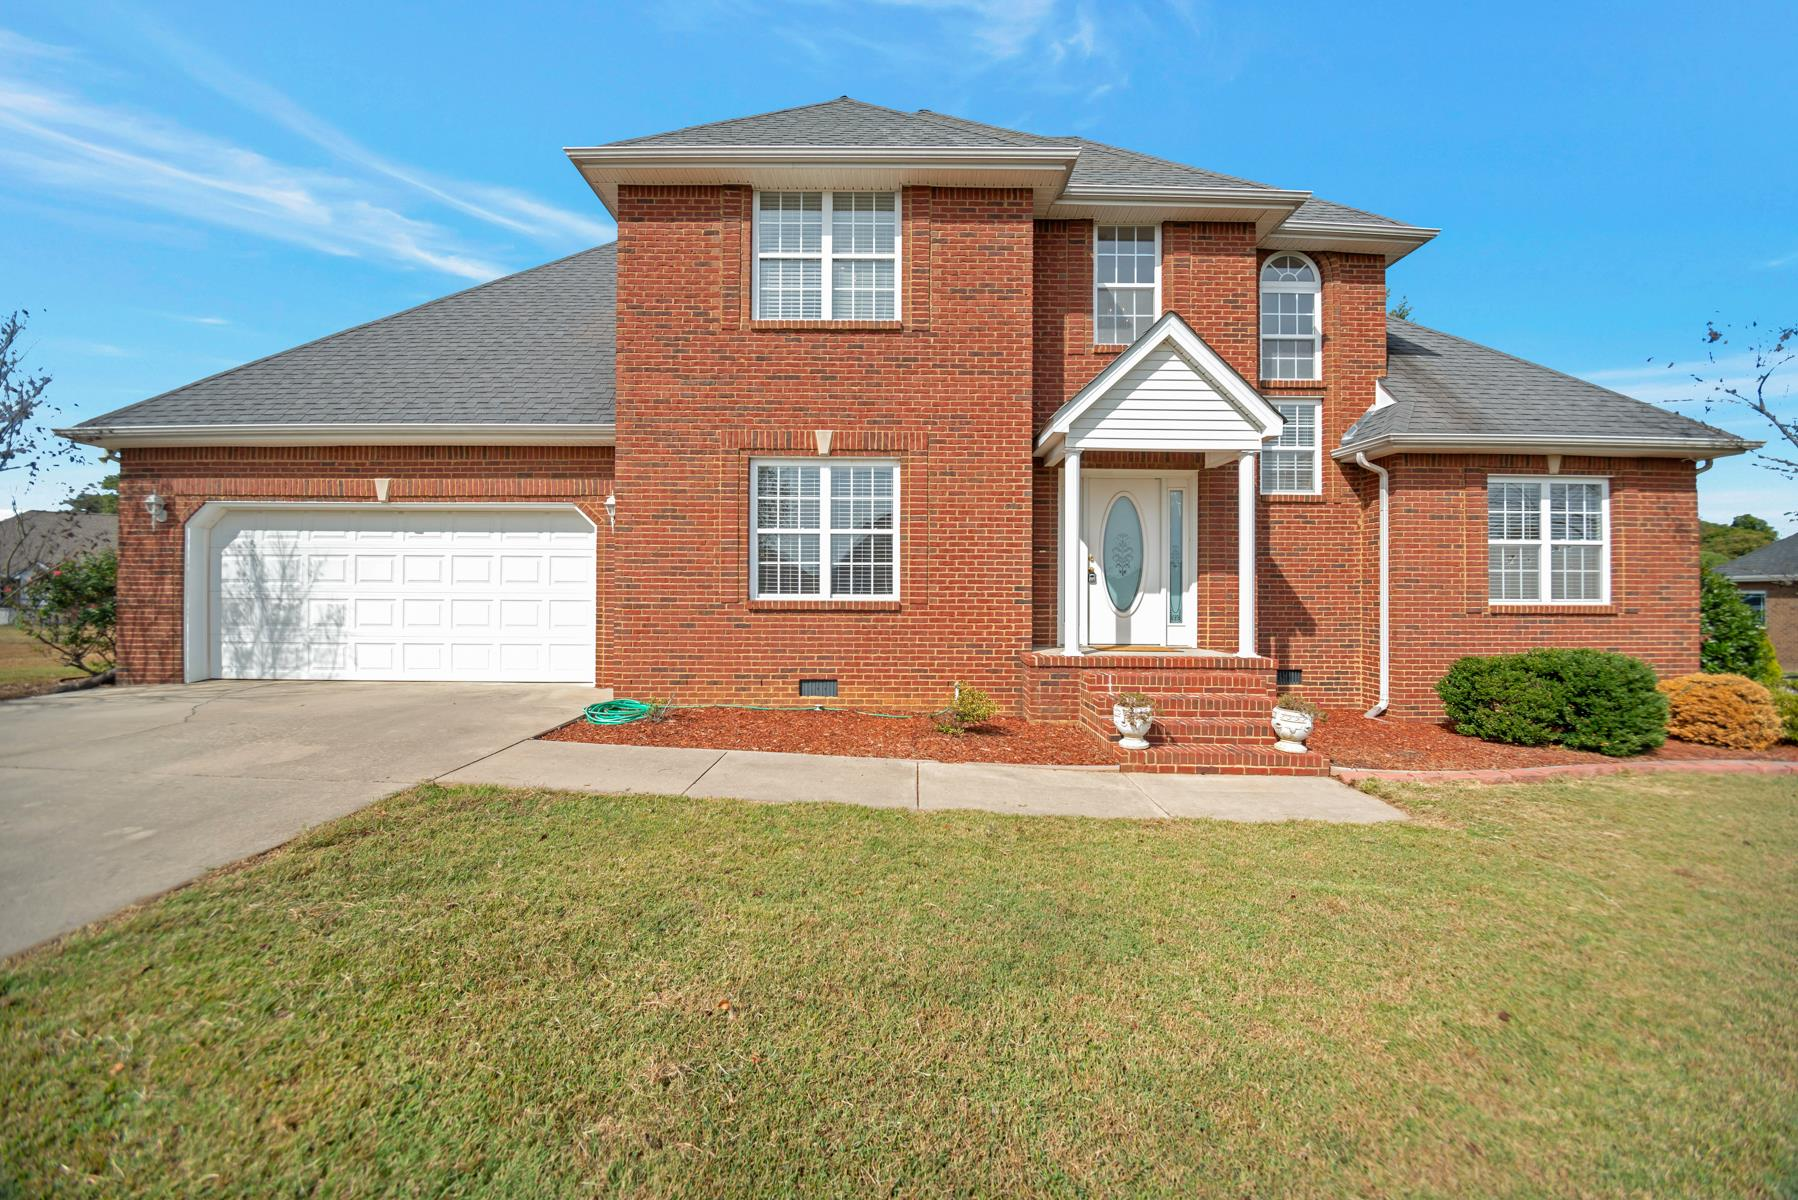 197 Meadowland Ct 37355 - One of Manchester Homes for Sale